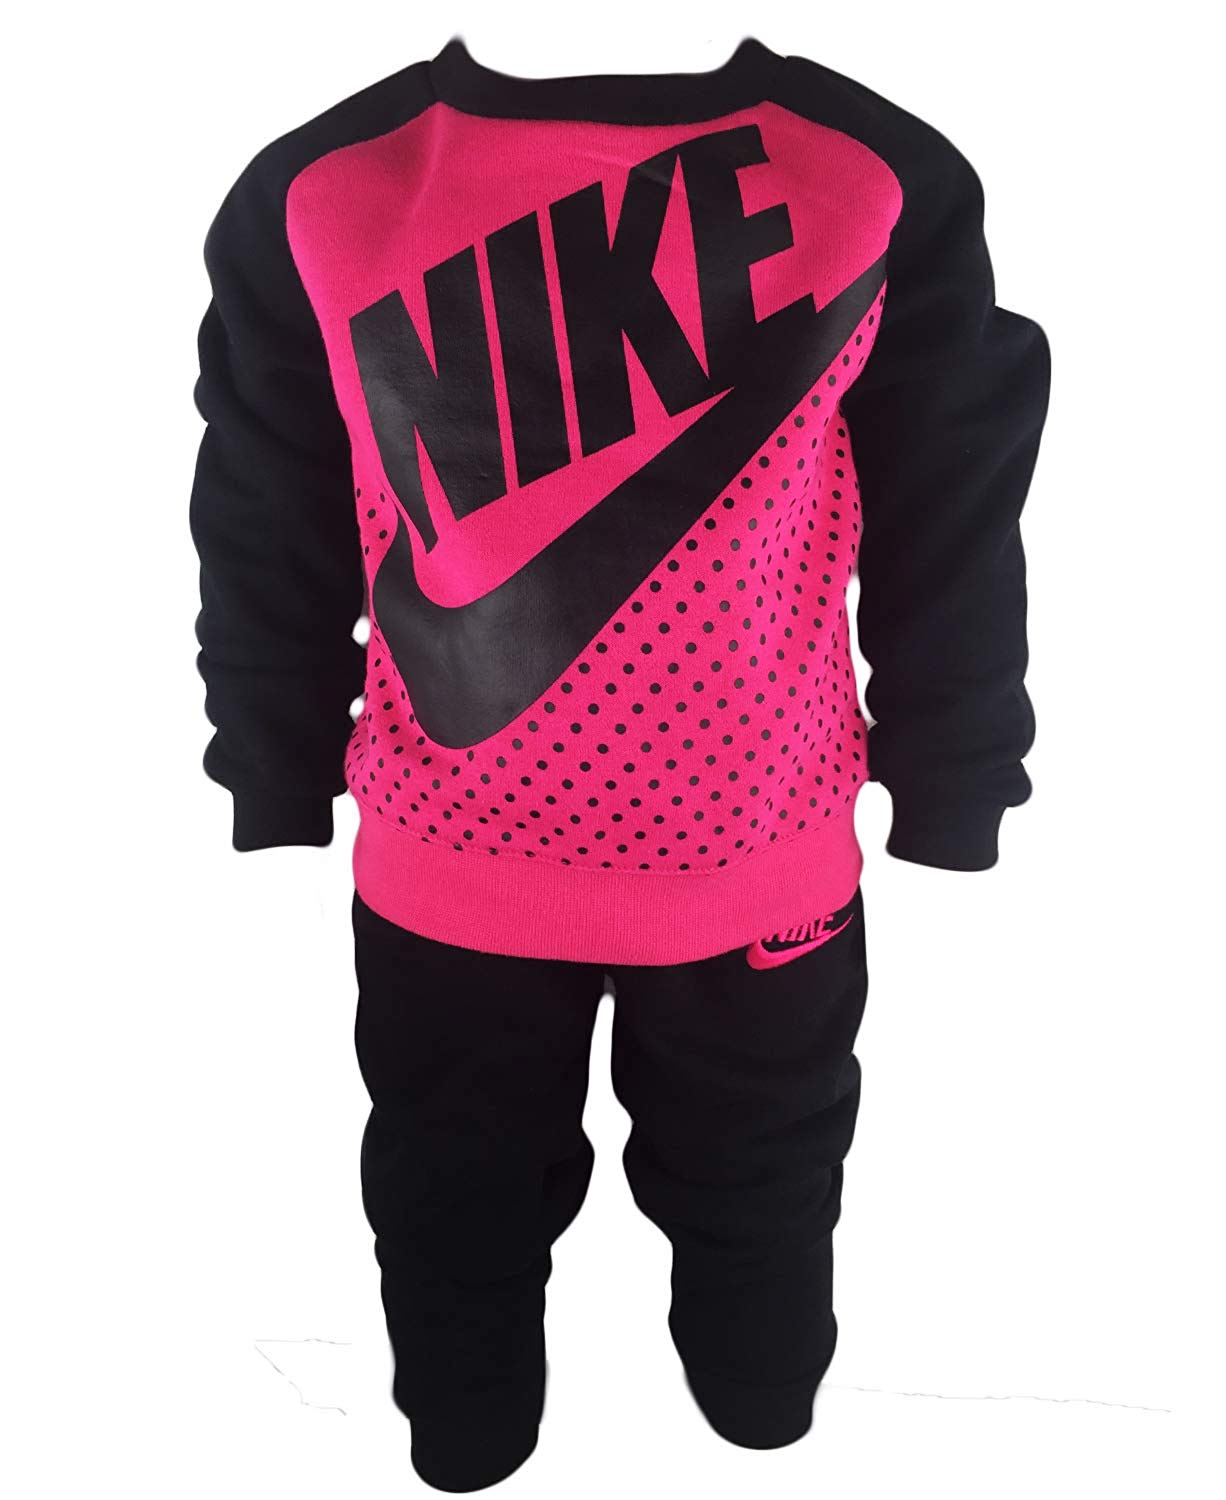 Toddler Girls Nike Colorblock Fleece Sweater Pants Set Baby Clothes Baby Clothing Baby Boy Clothes Baby Girl Clothes Cheap Name Brand Clothes For Kids Toddler Name Brand Clothes Cheap Name Brand Baby